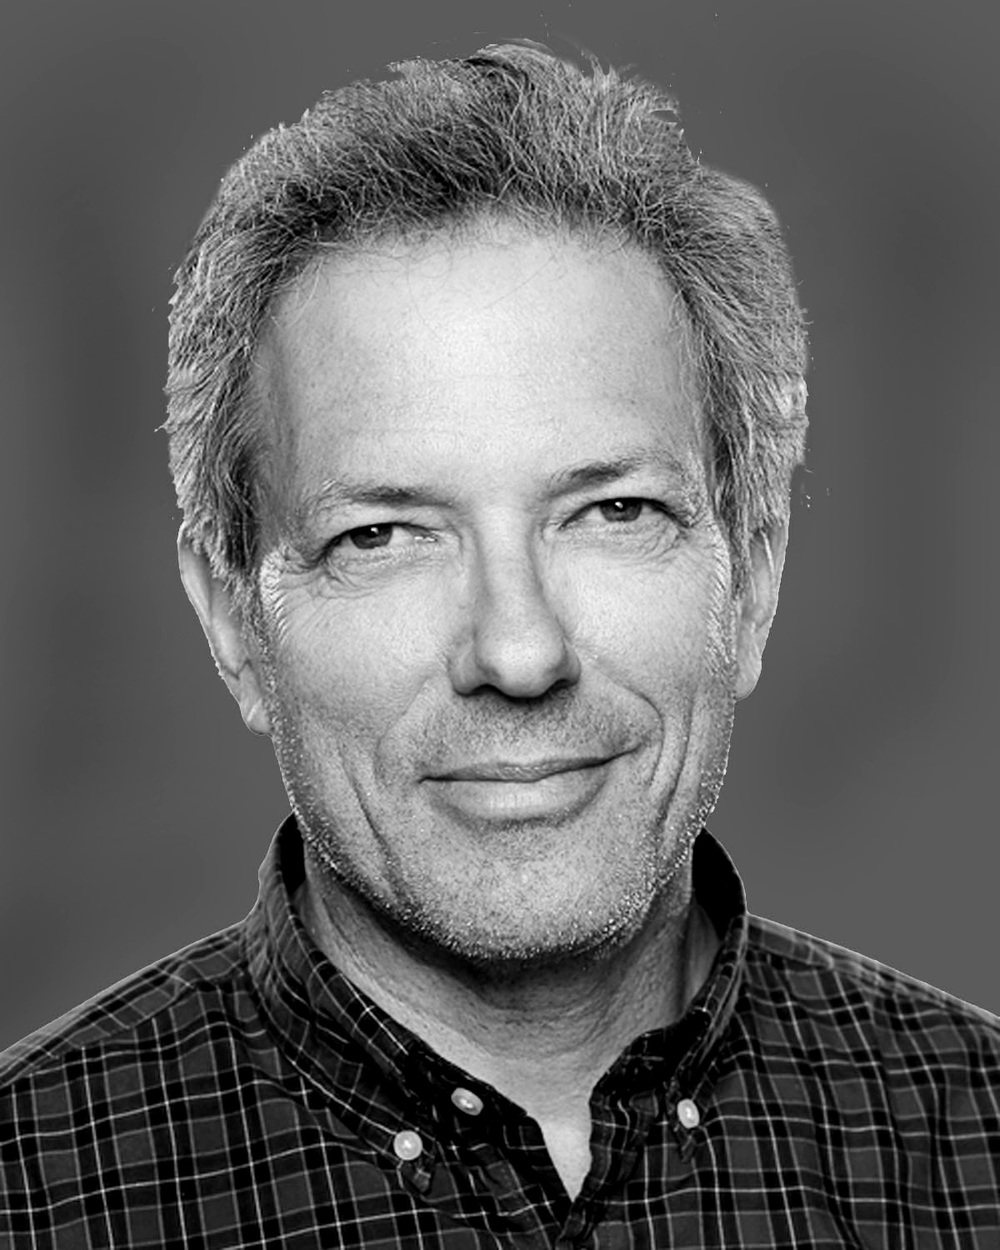 Peter Freed, American Photographer